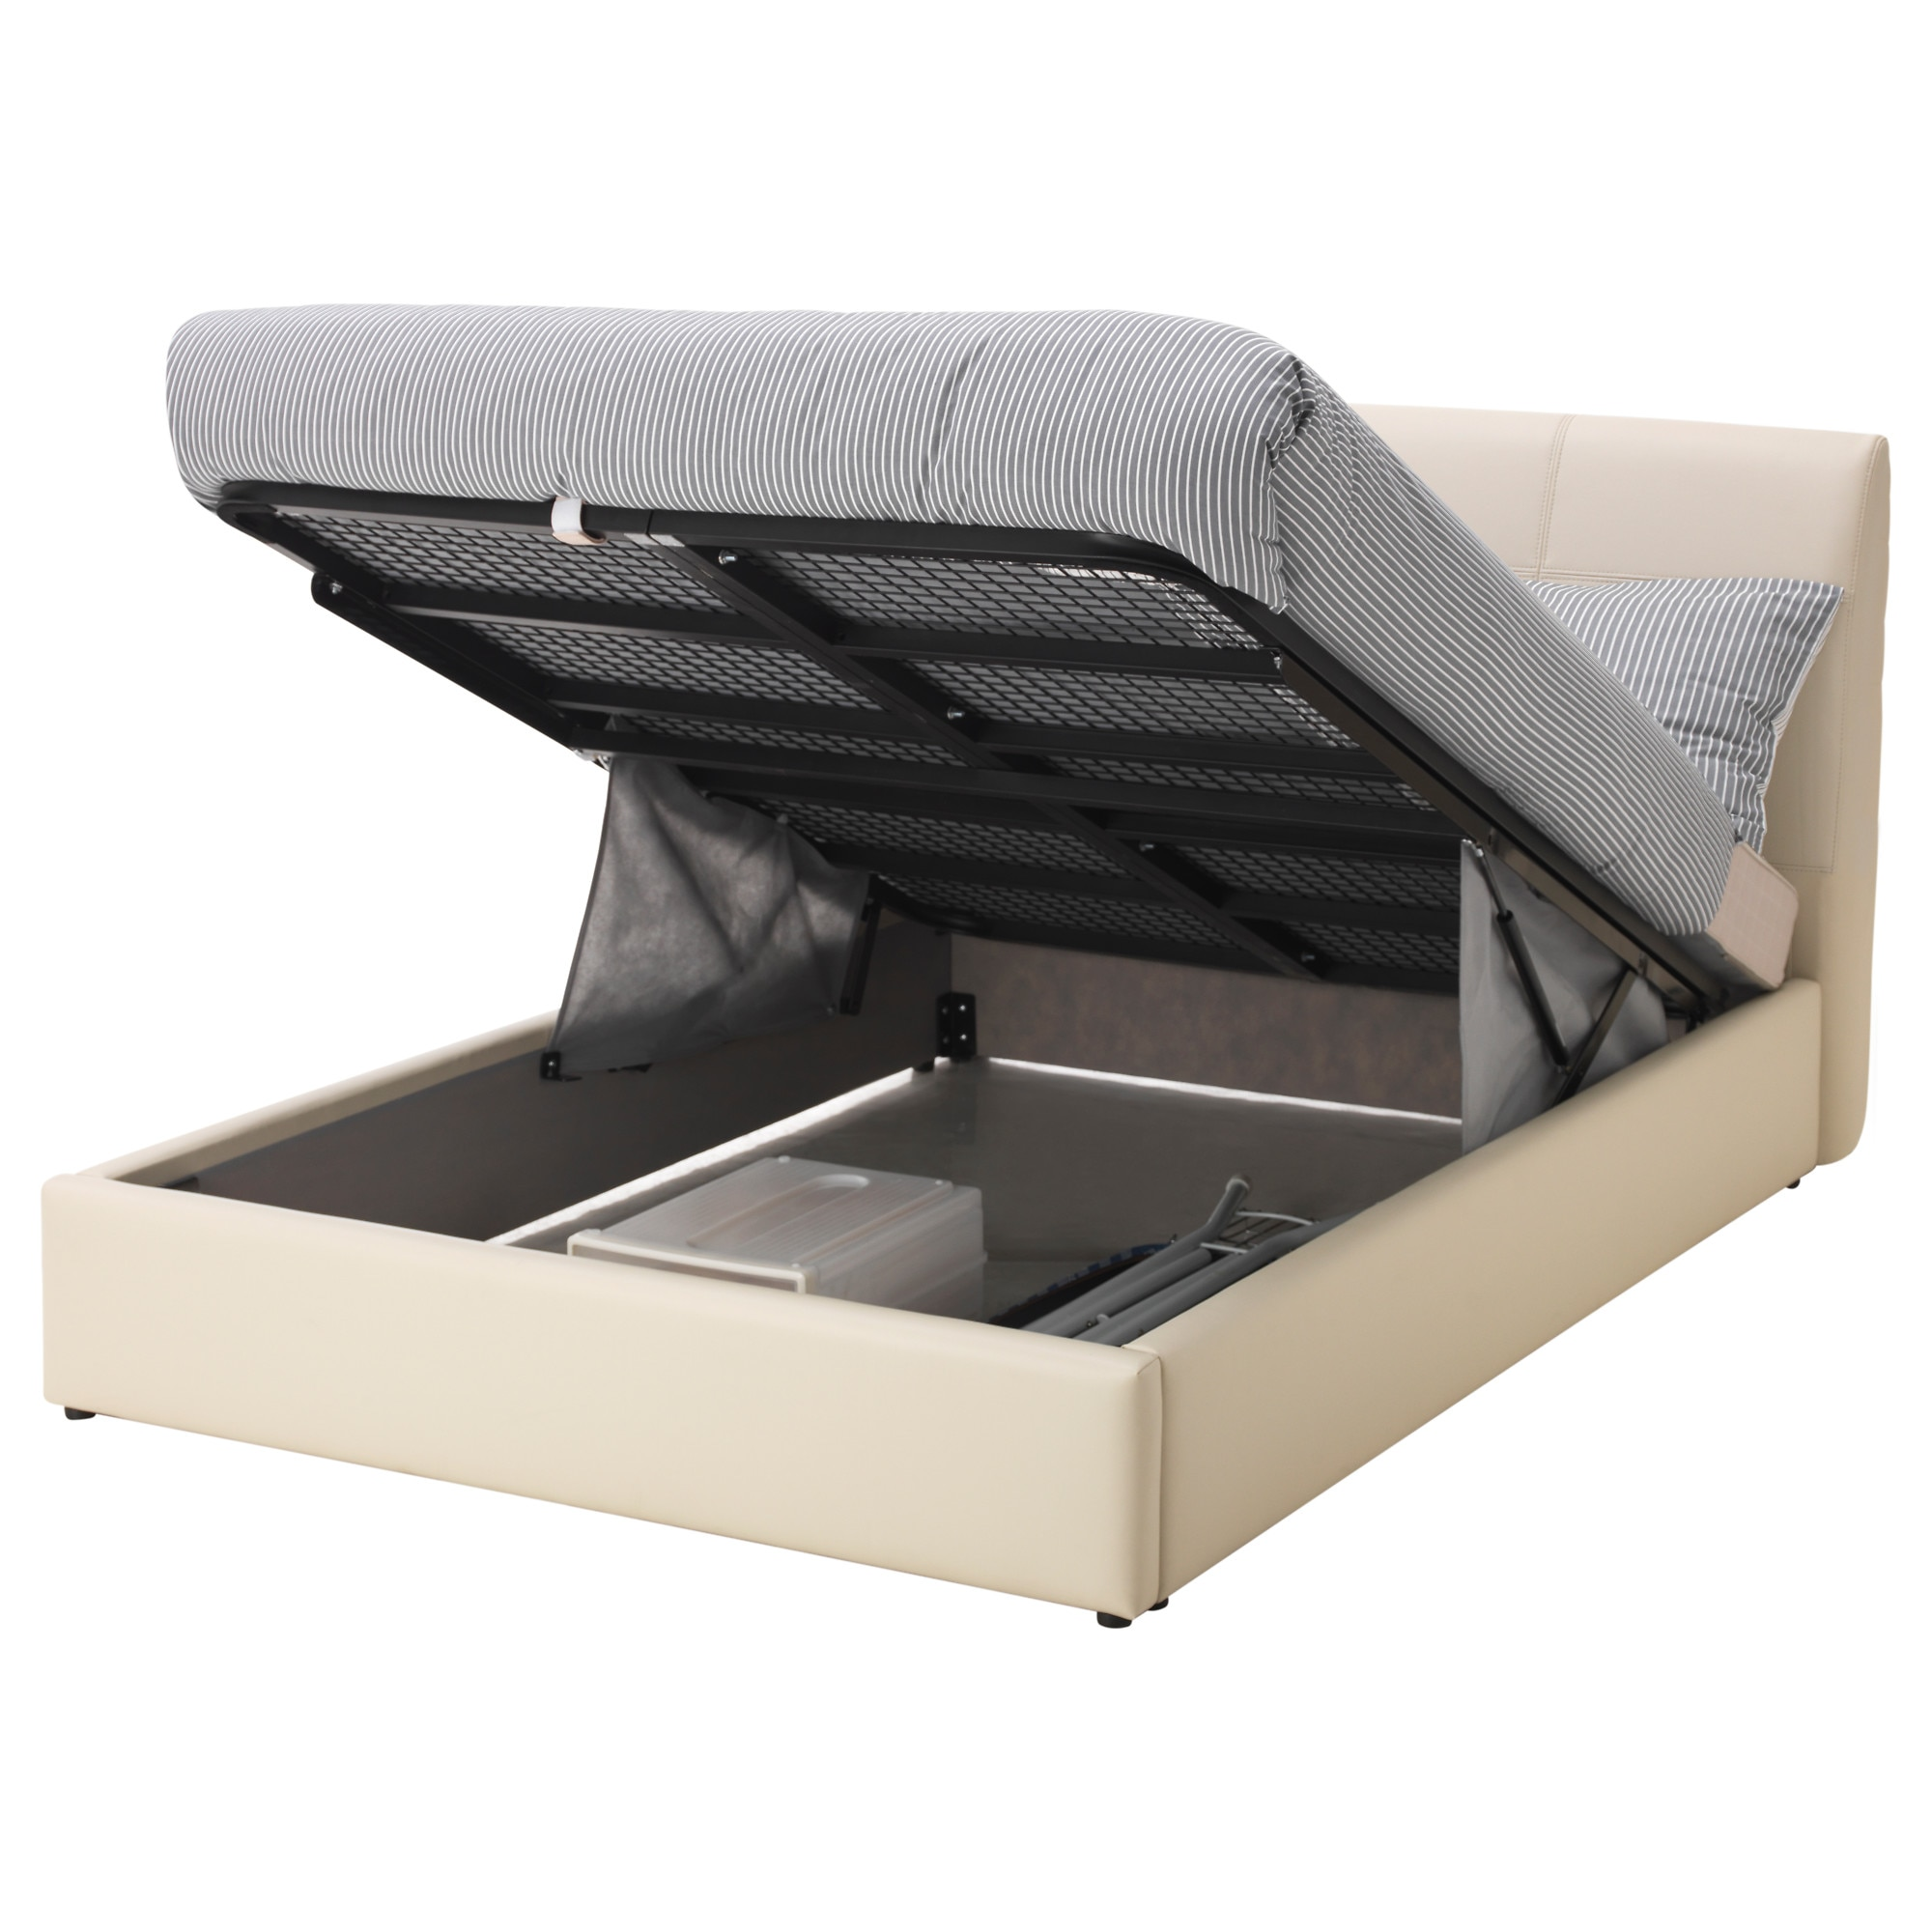 Ottoman bed ikea - S Fteland Ottoman Bed Kimstad Off White Length 220 Cm Width 183 5 Cm